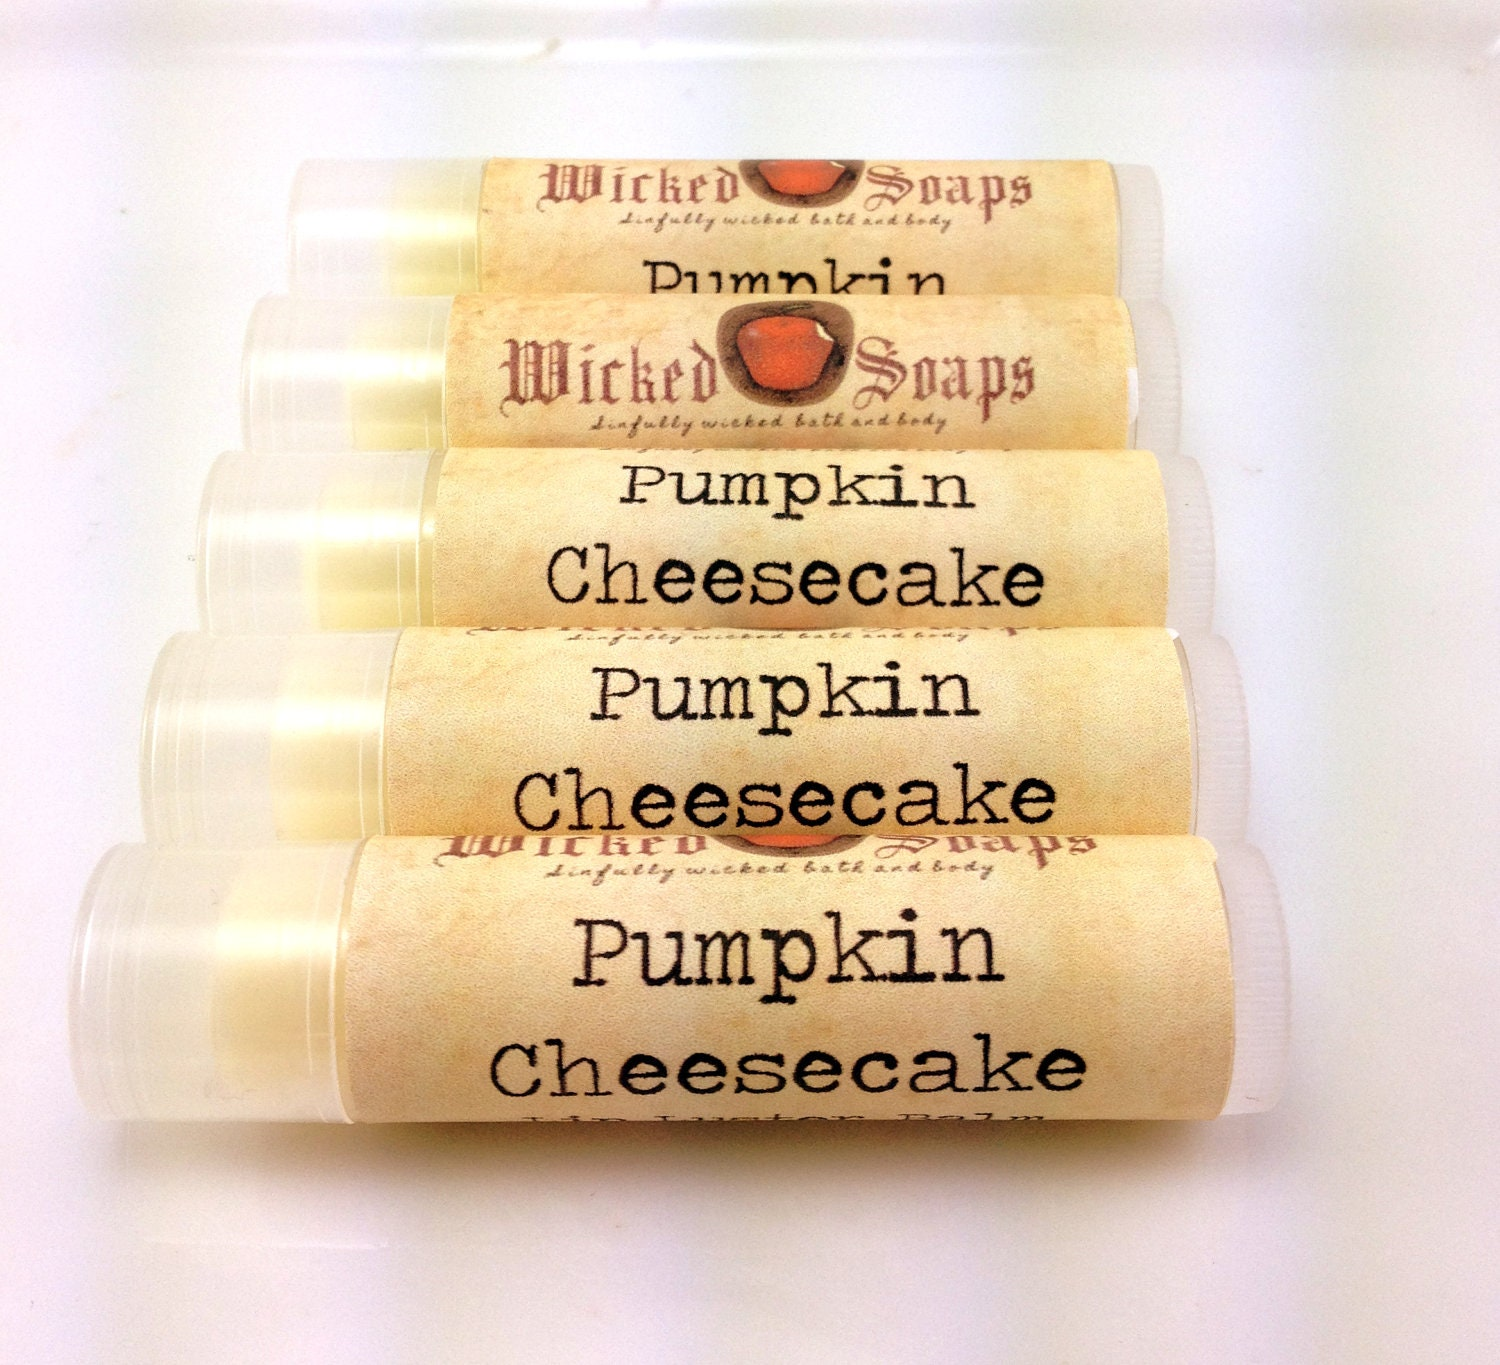 Lip Balm - Pumpkin Cheesecake Lip Balm - Cocoa Butter Beeswax Lip Balm by WickedSoaps - WickedSoaps